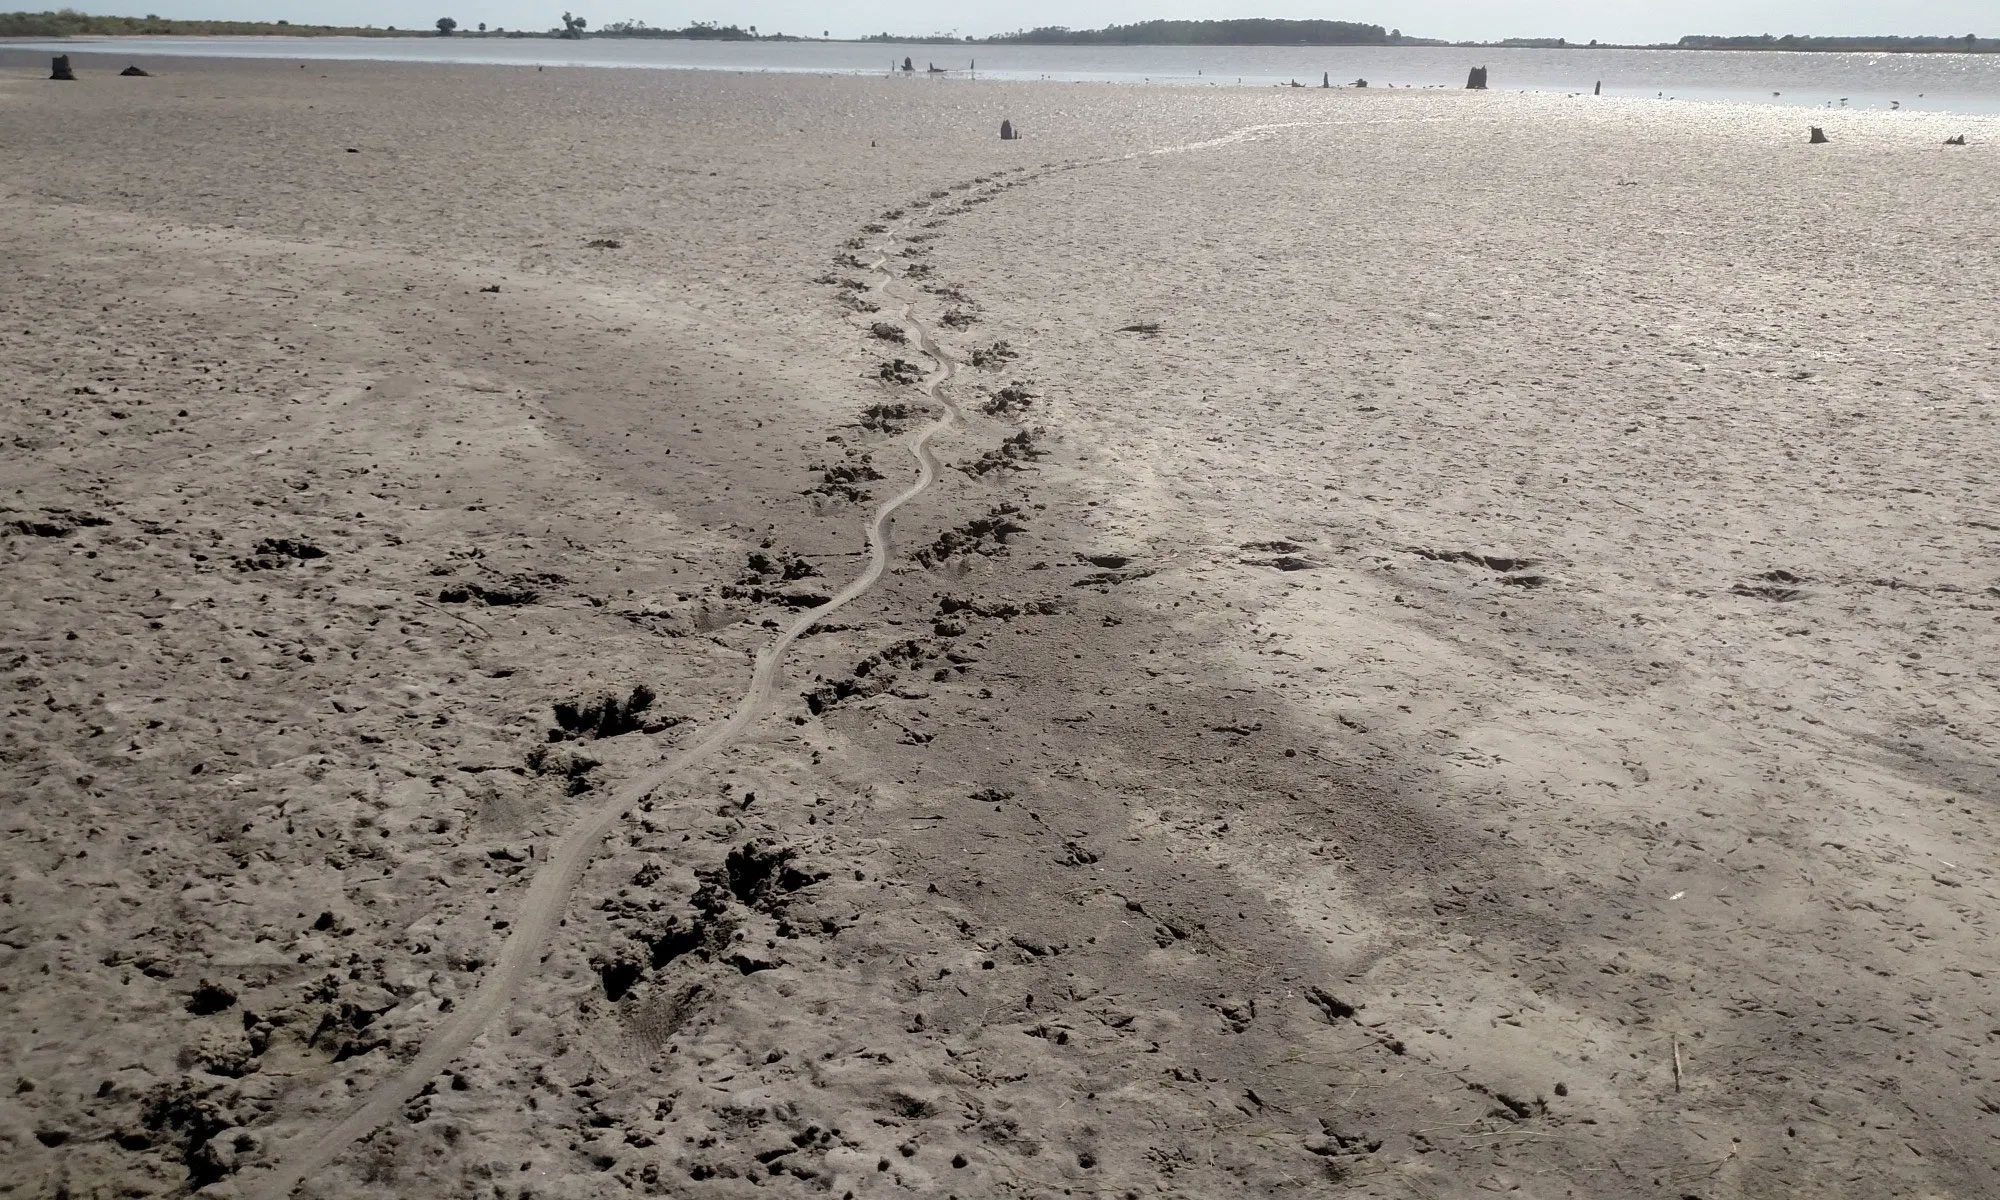 tortoise footprints in the sand